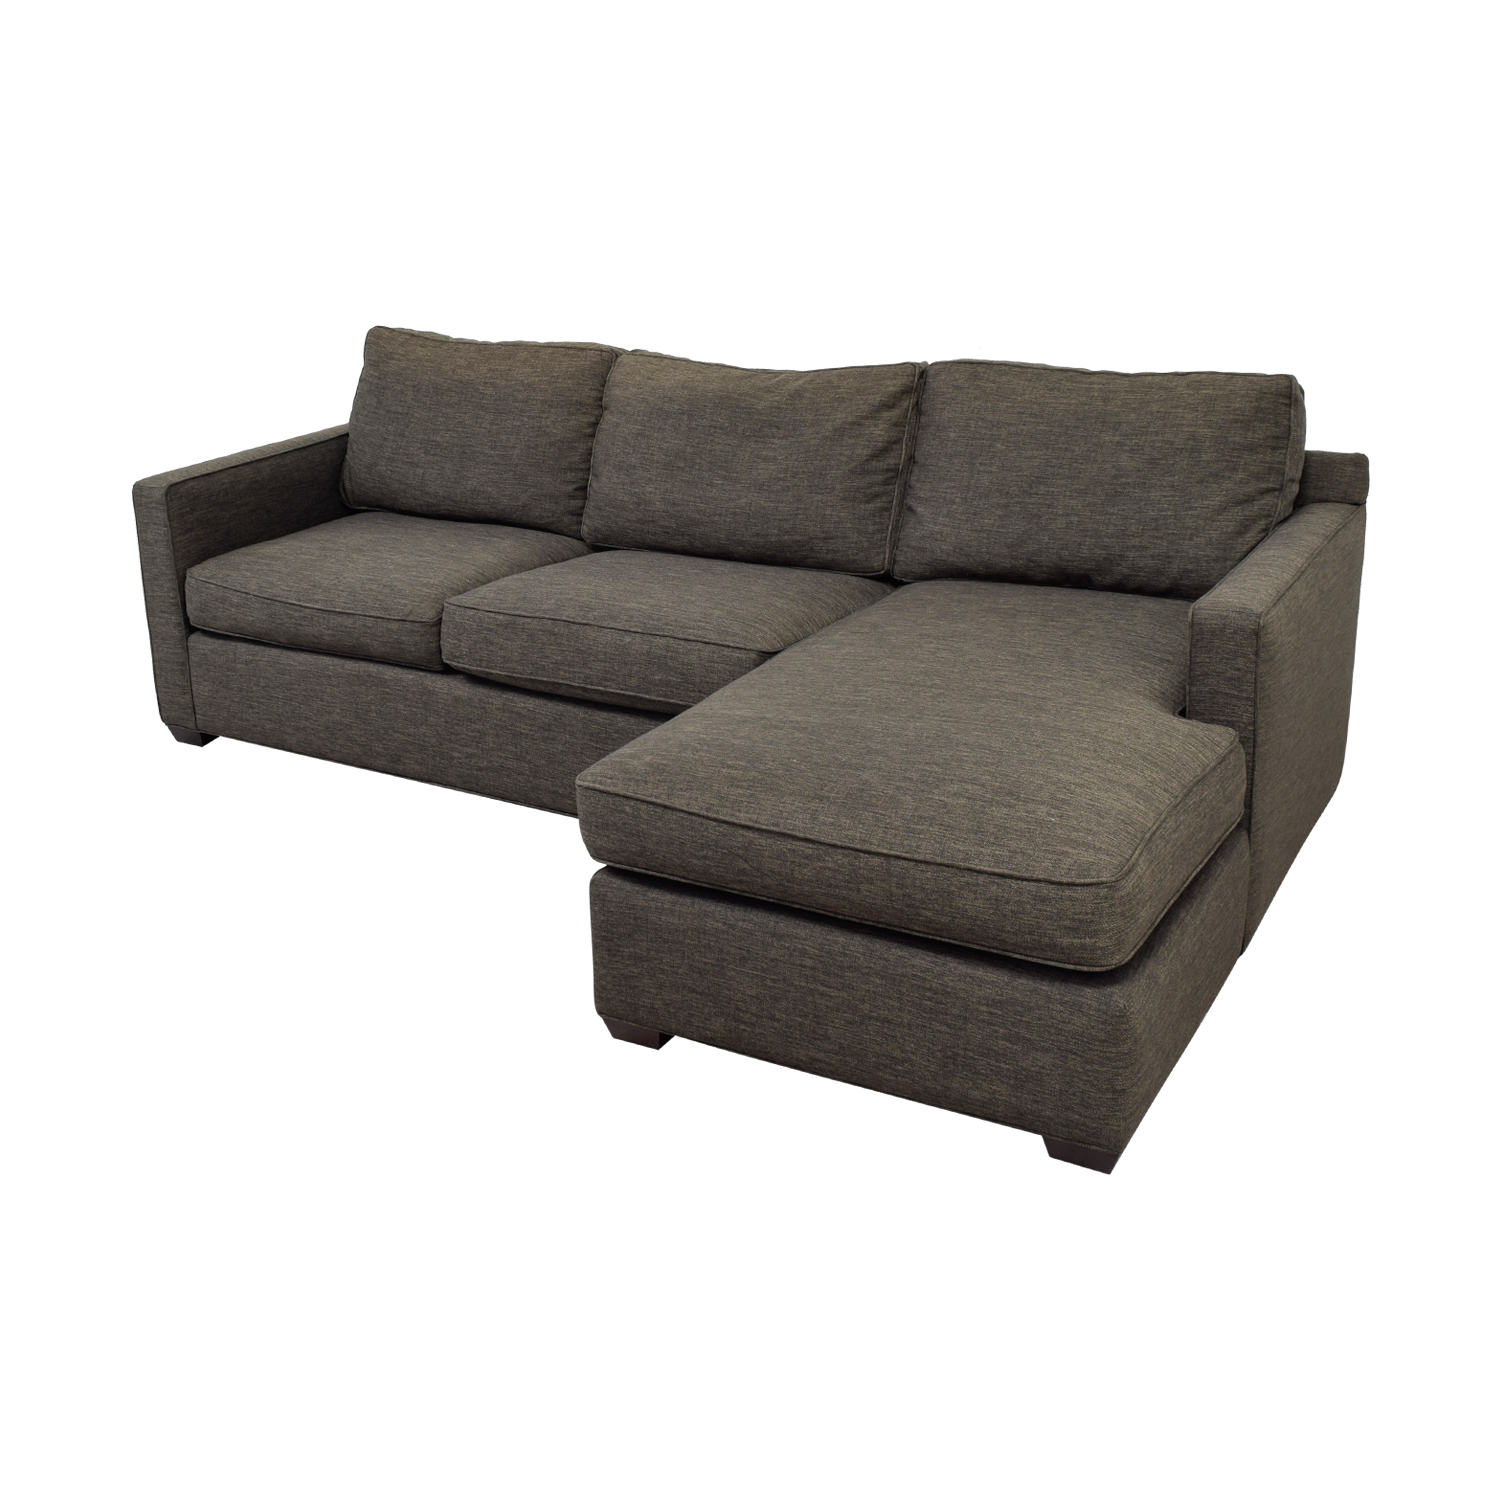 crate and barrel davis sofa leather bed 56 off three seat